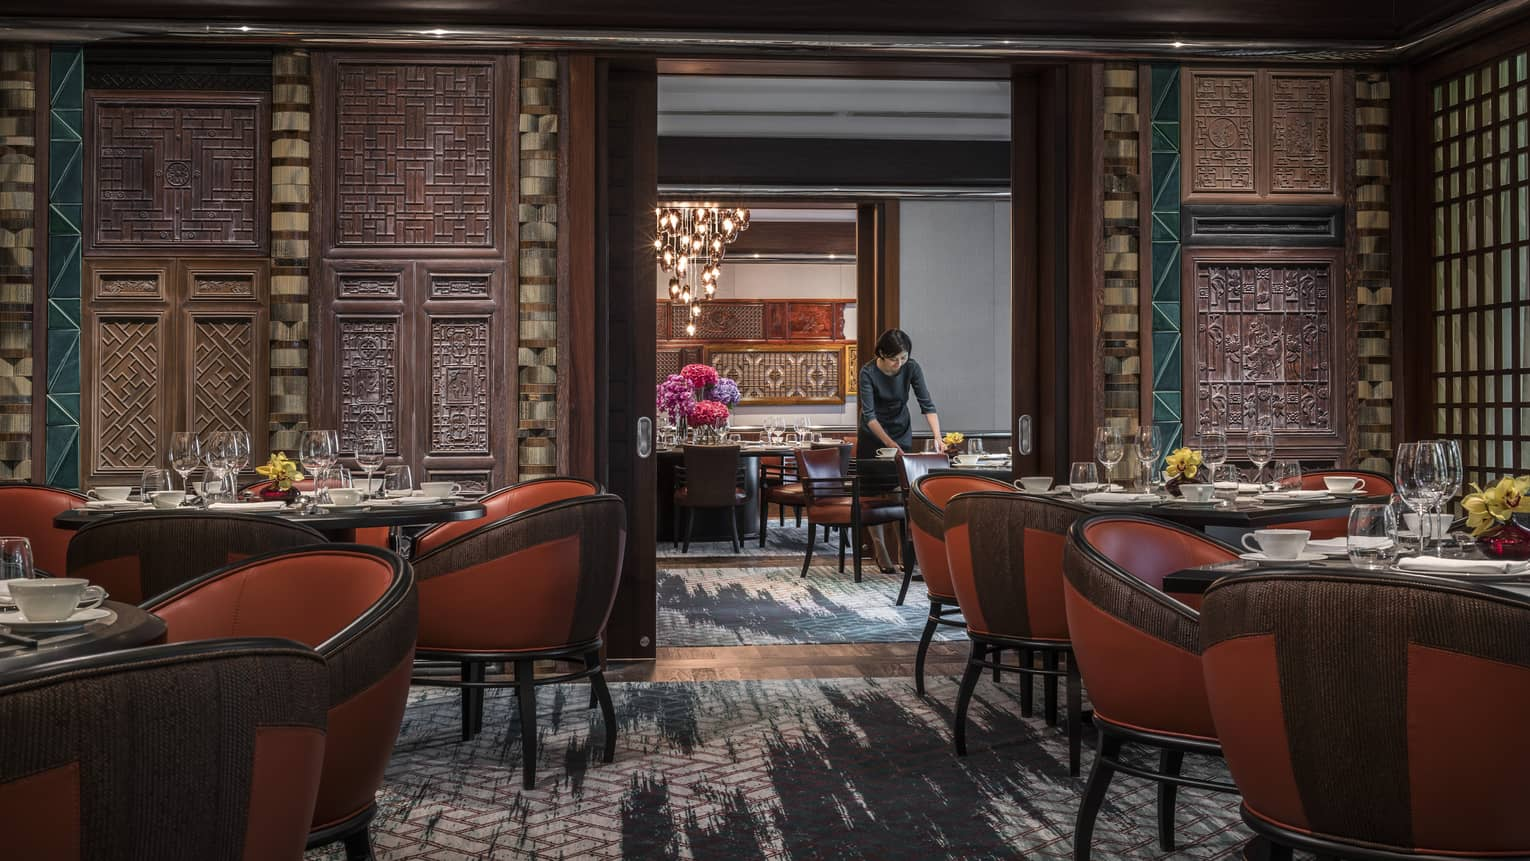 Woman sets table at Jiang-Nan Chun, Michelin-starred Cantonese restaurant, with red leather bucket chairs around dining tables, carved wood walls.